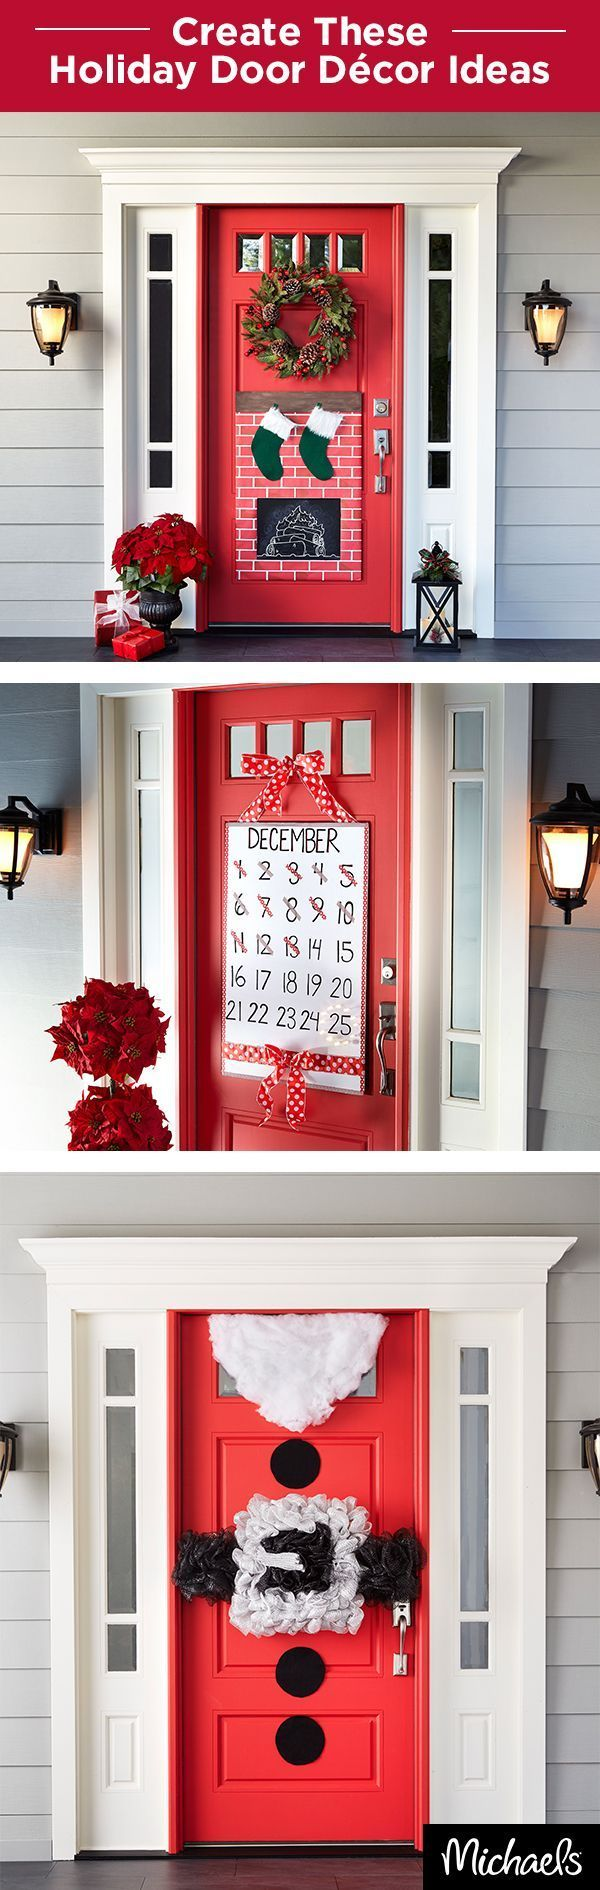 Holiday door decoration